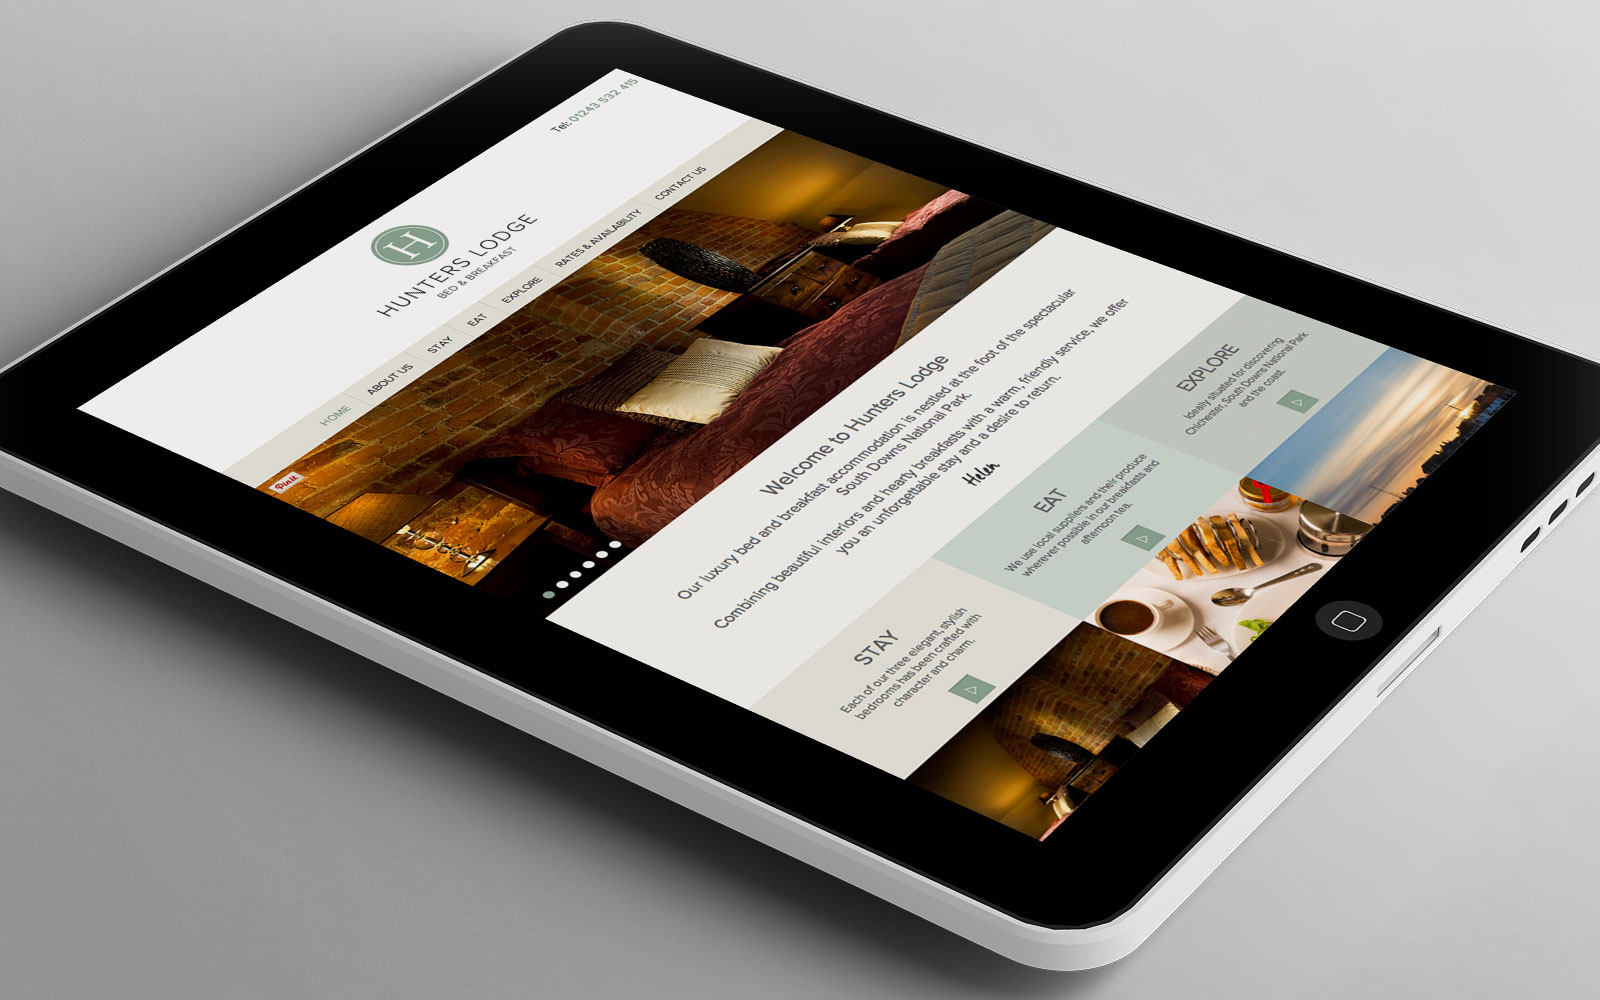 A new website for Hunters Lodge